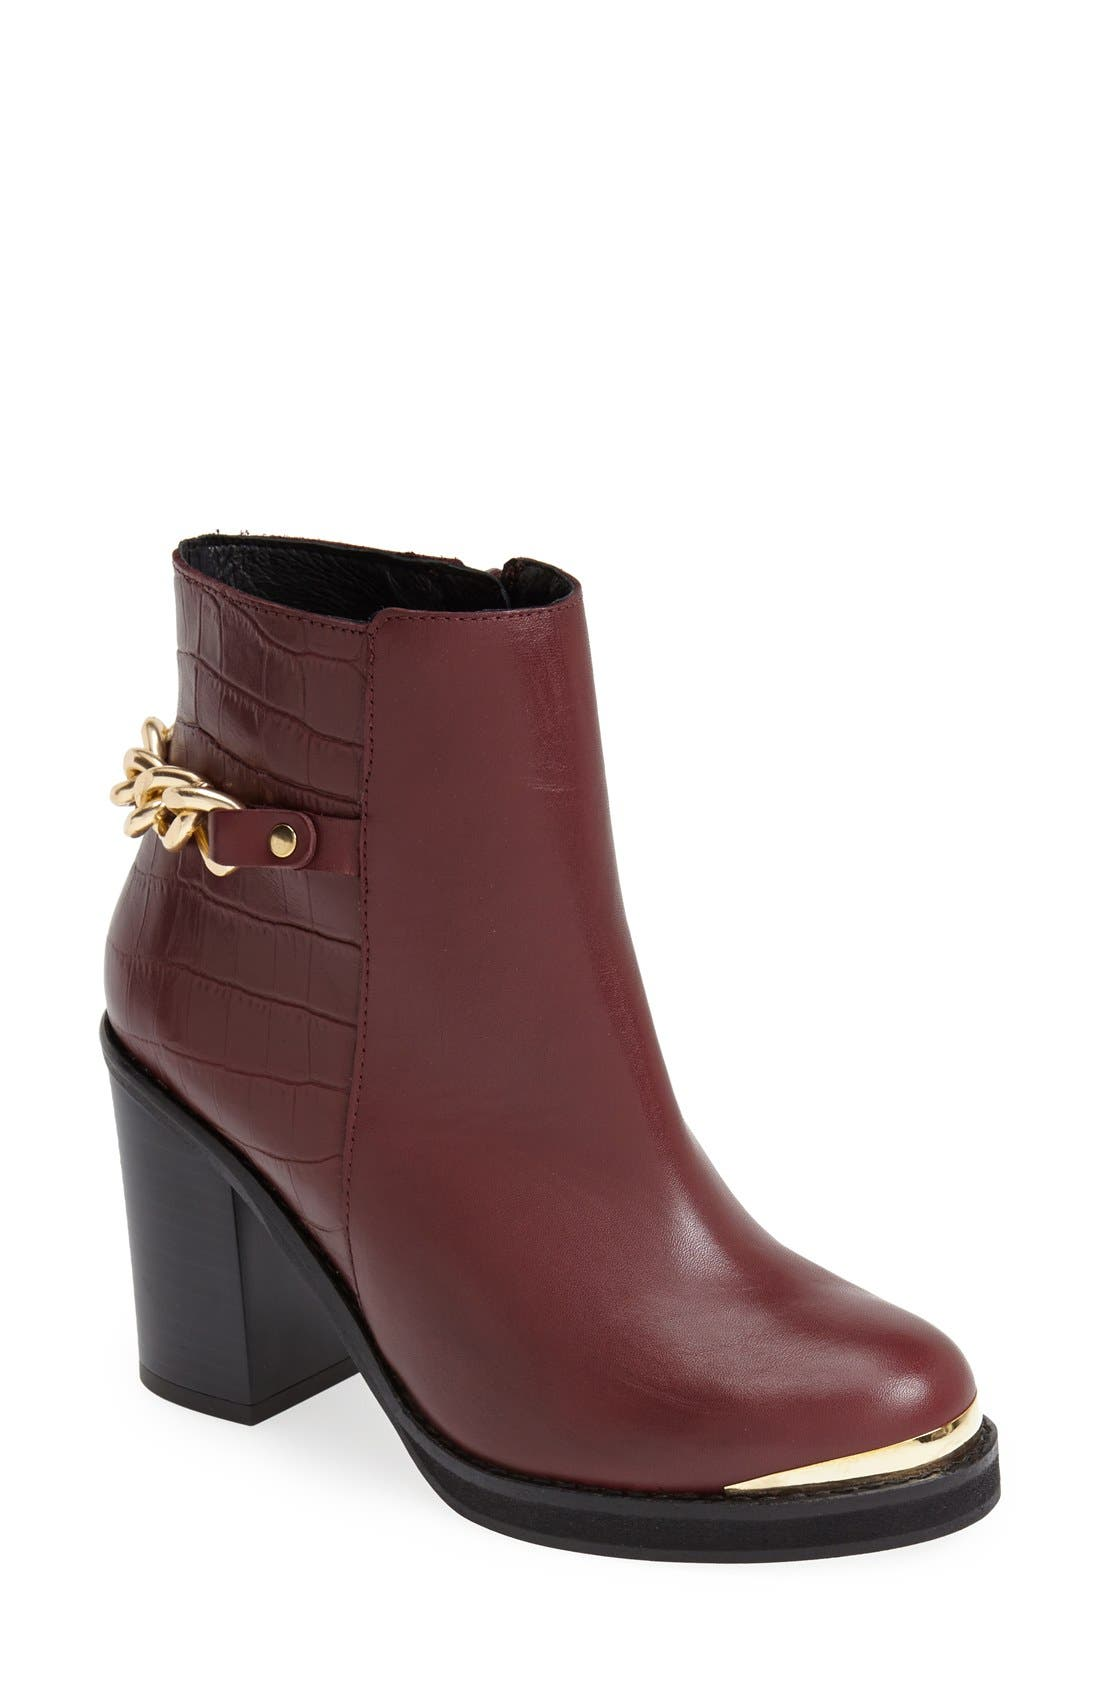 Main Image - Topshop 'Merit' Chain Ankle Boot (Women)